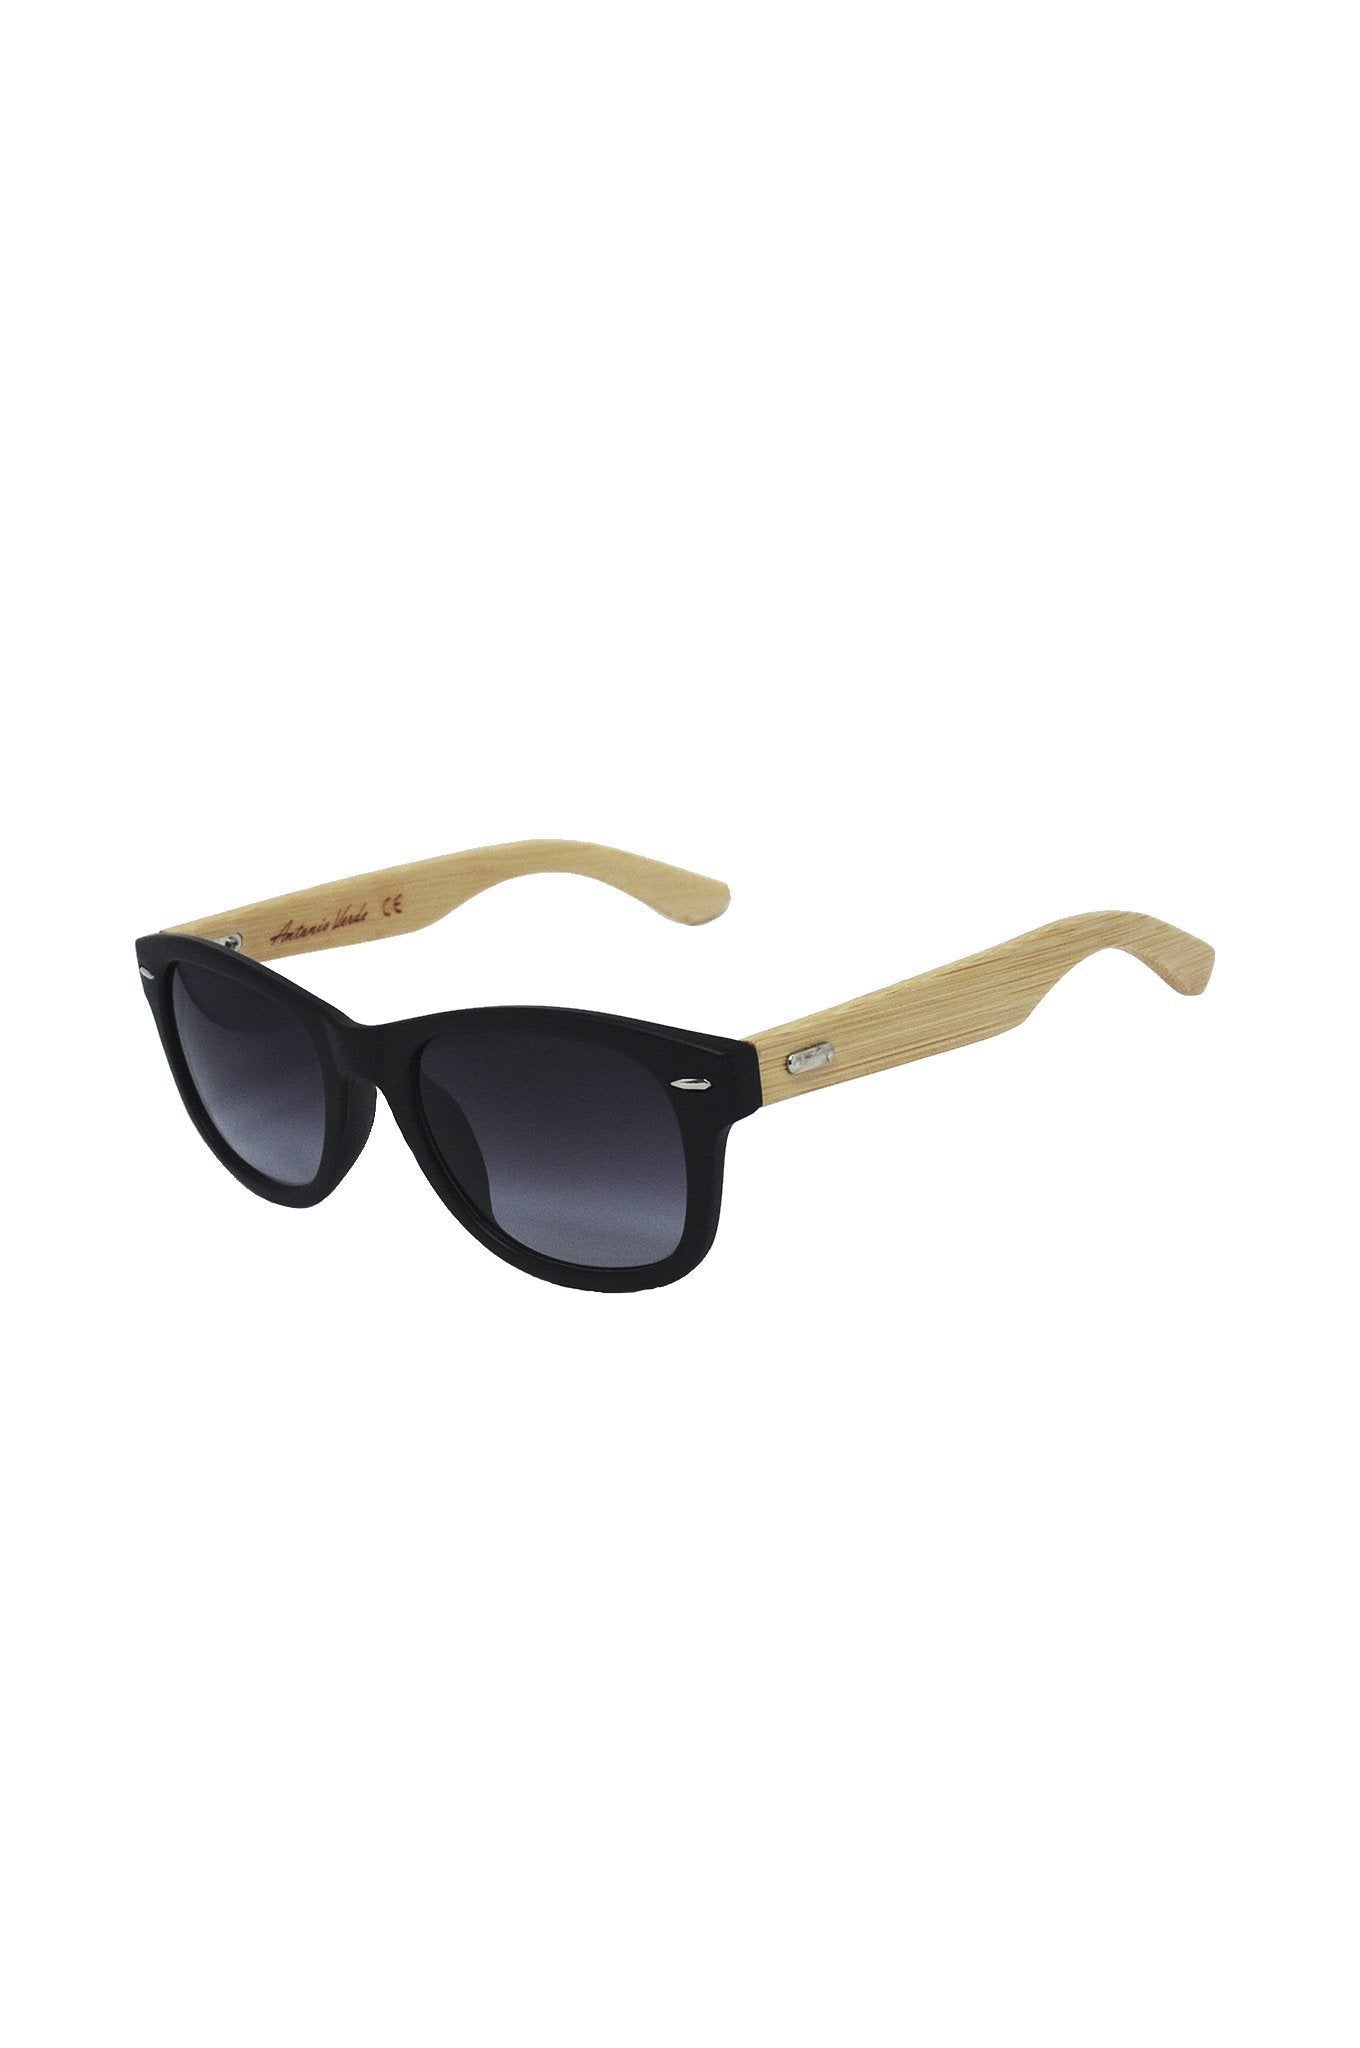 Sunglasses - Trento Black